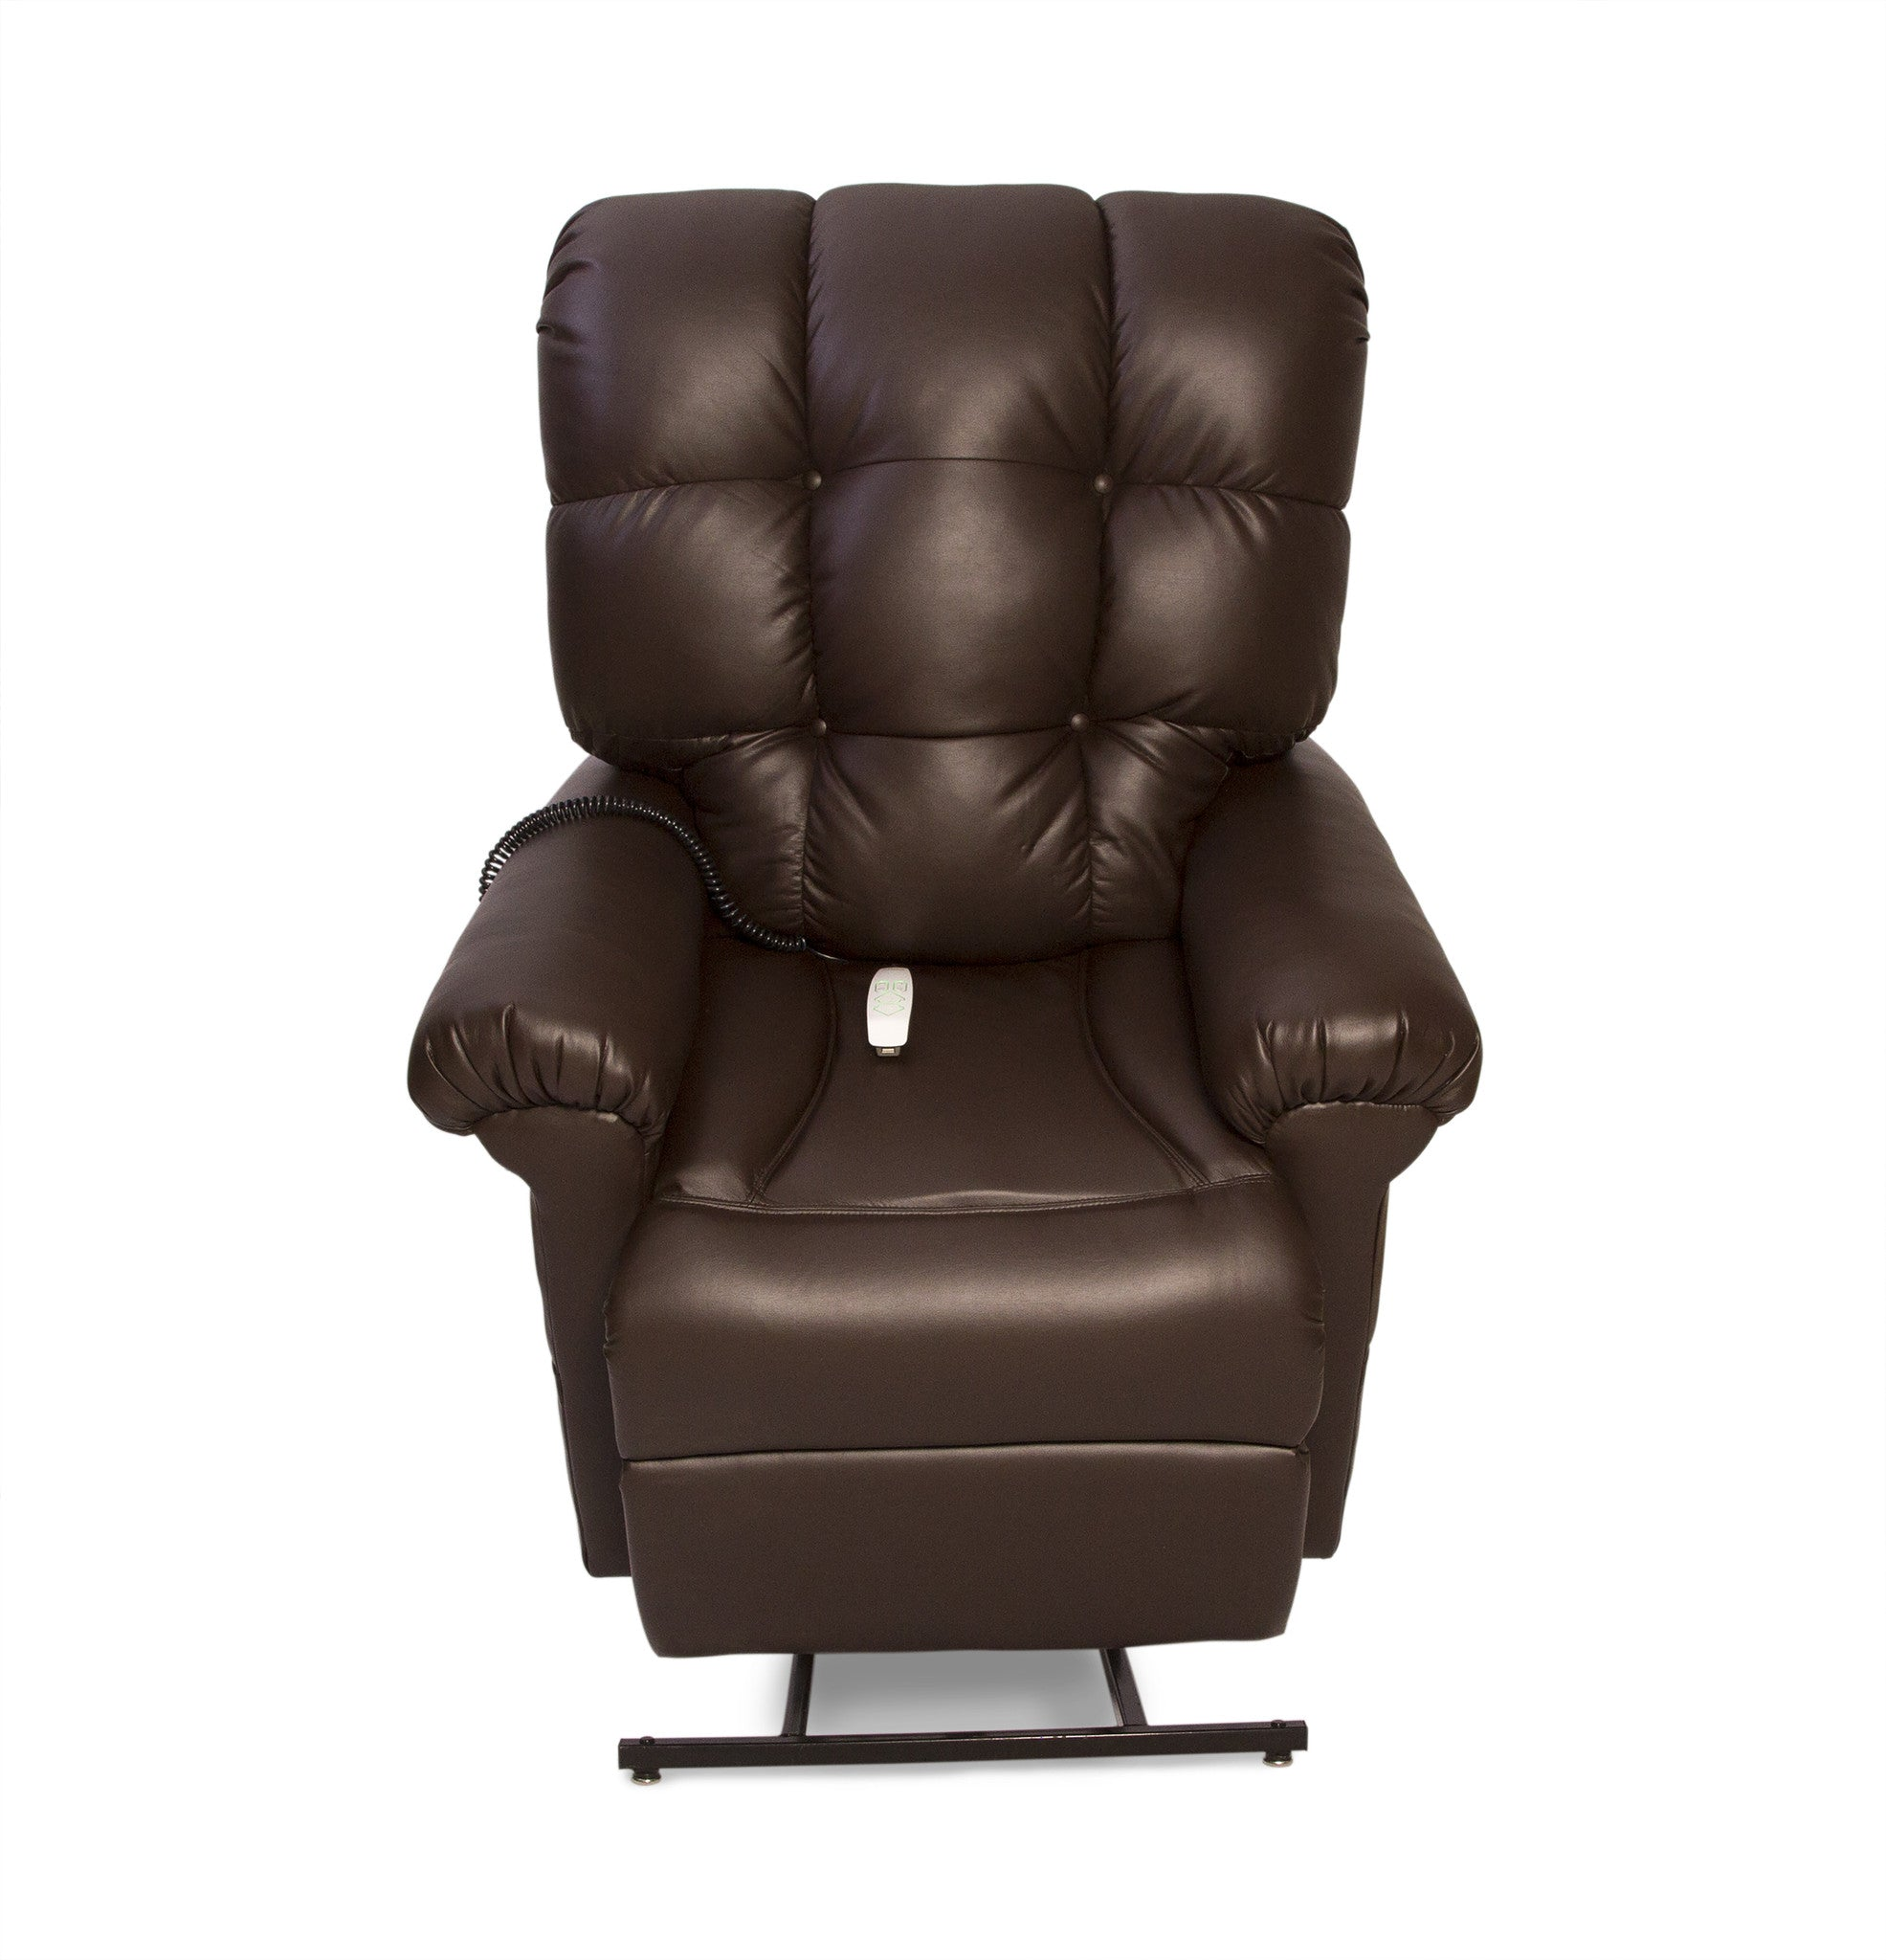 melody flexsteel chairs recliners lift product recliner harris furniture family